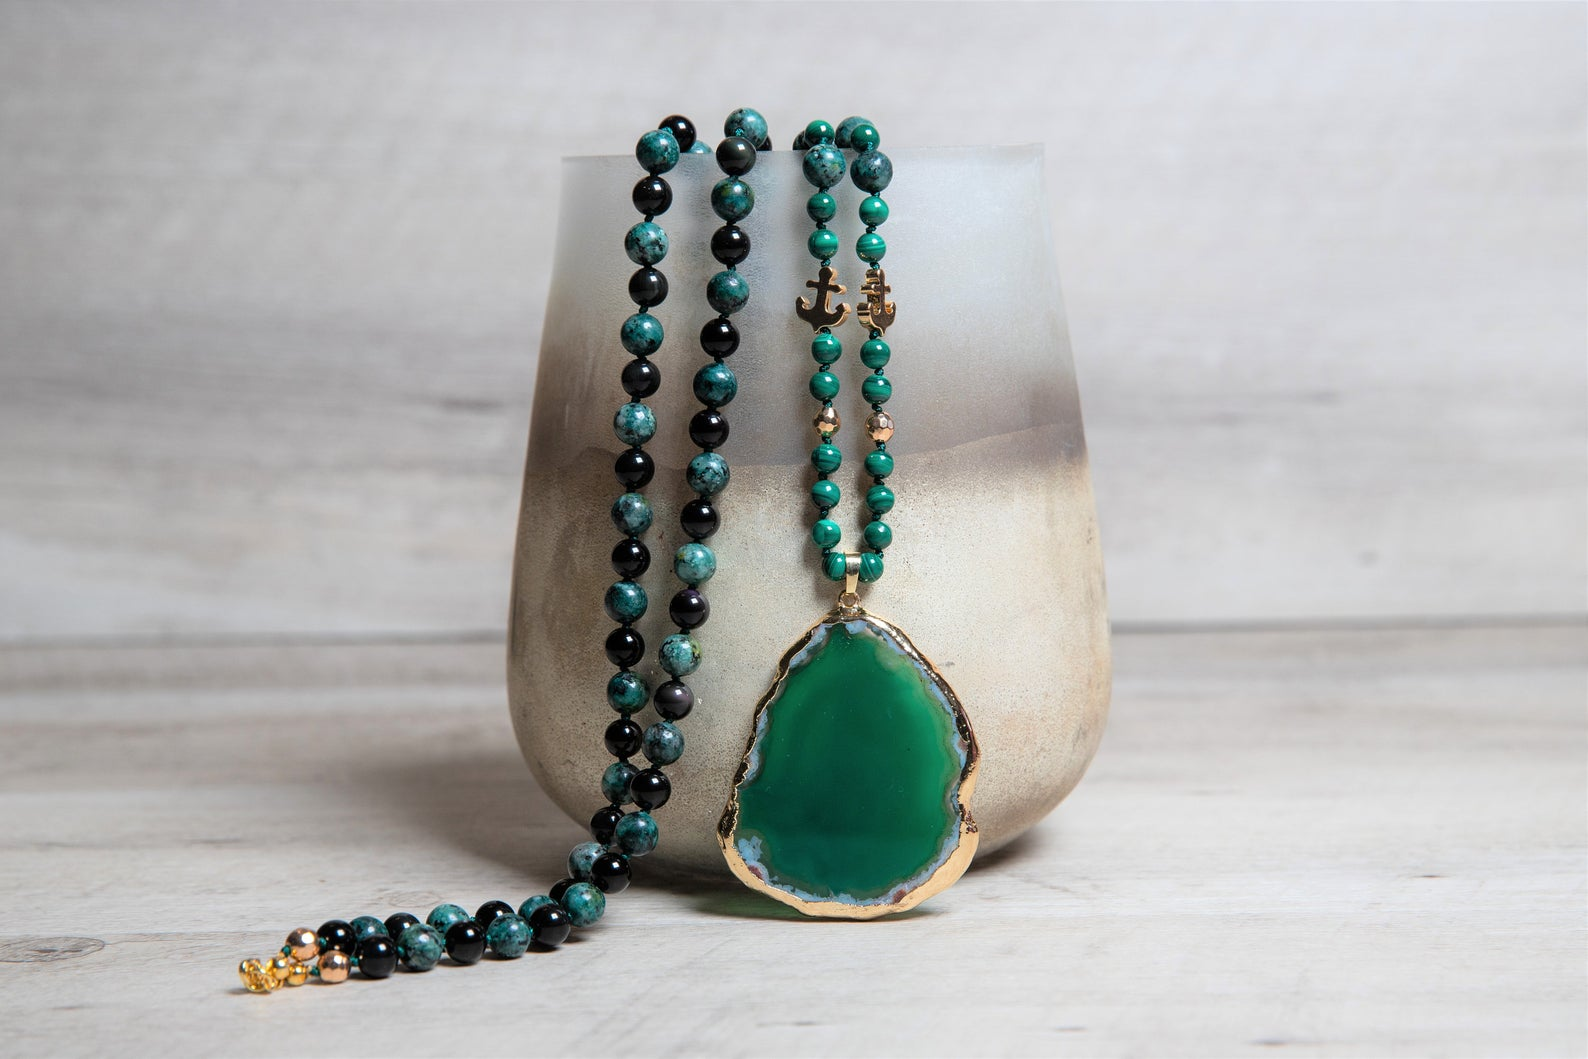 Long Boho Malachite Necklace with Black Obsidian and African Turquoise - Large Green Agate Geode Pendant - 40th Birthday Gifts for Women